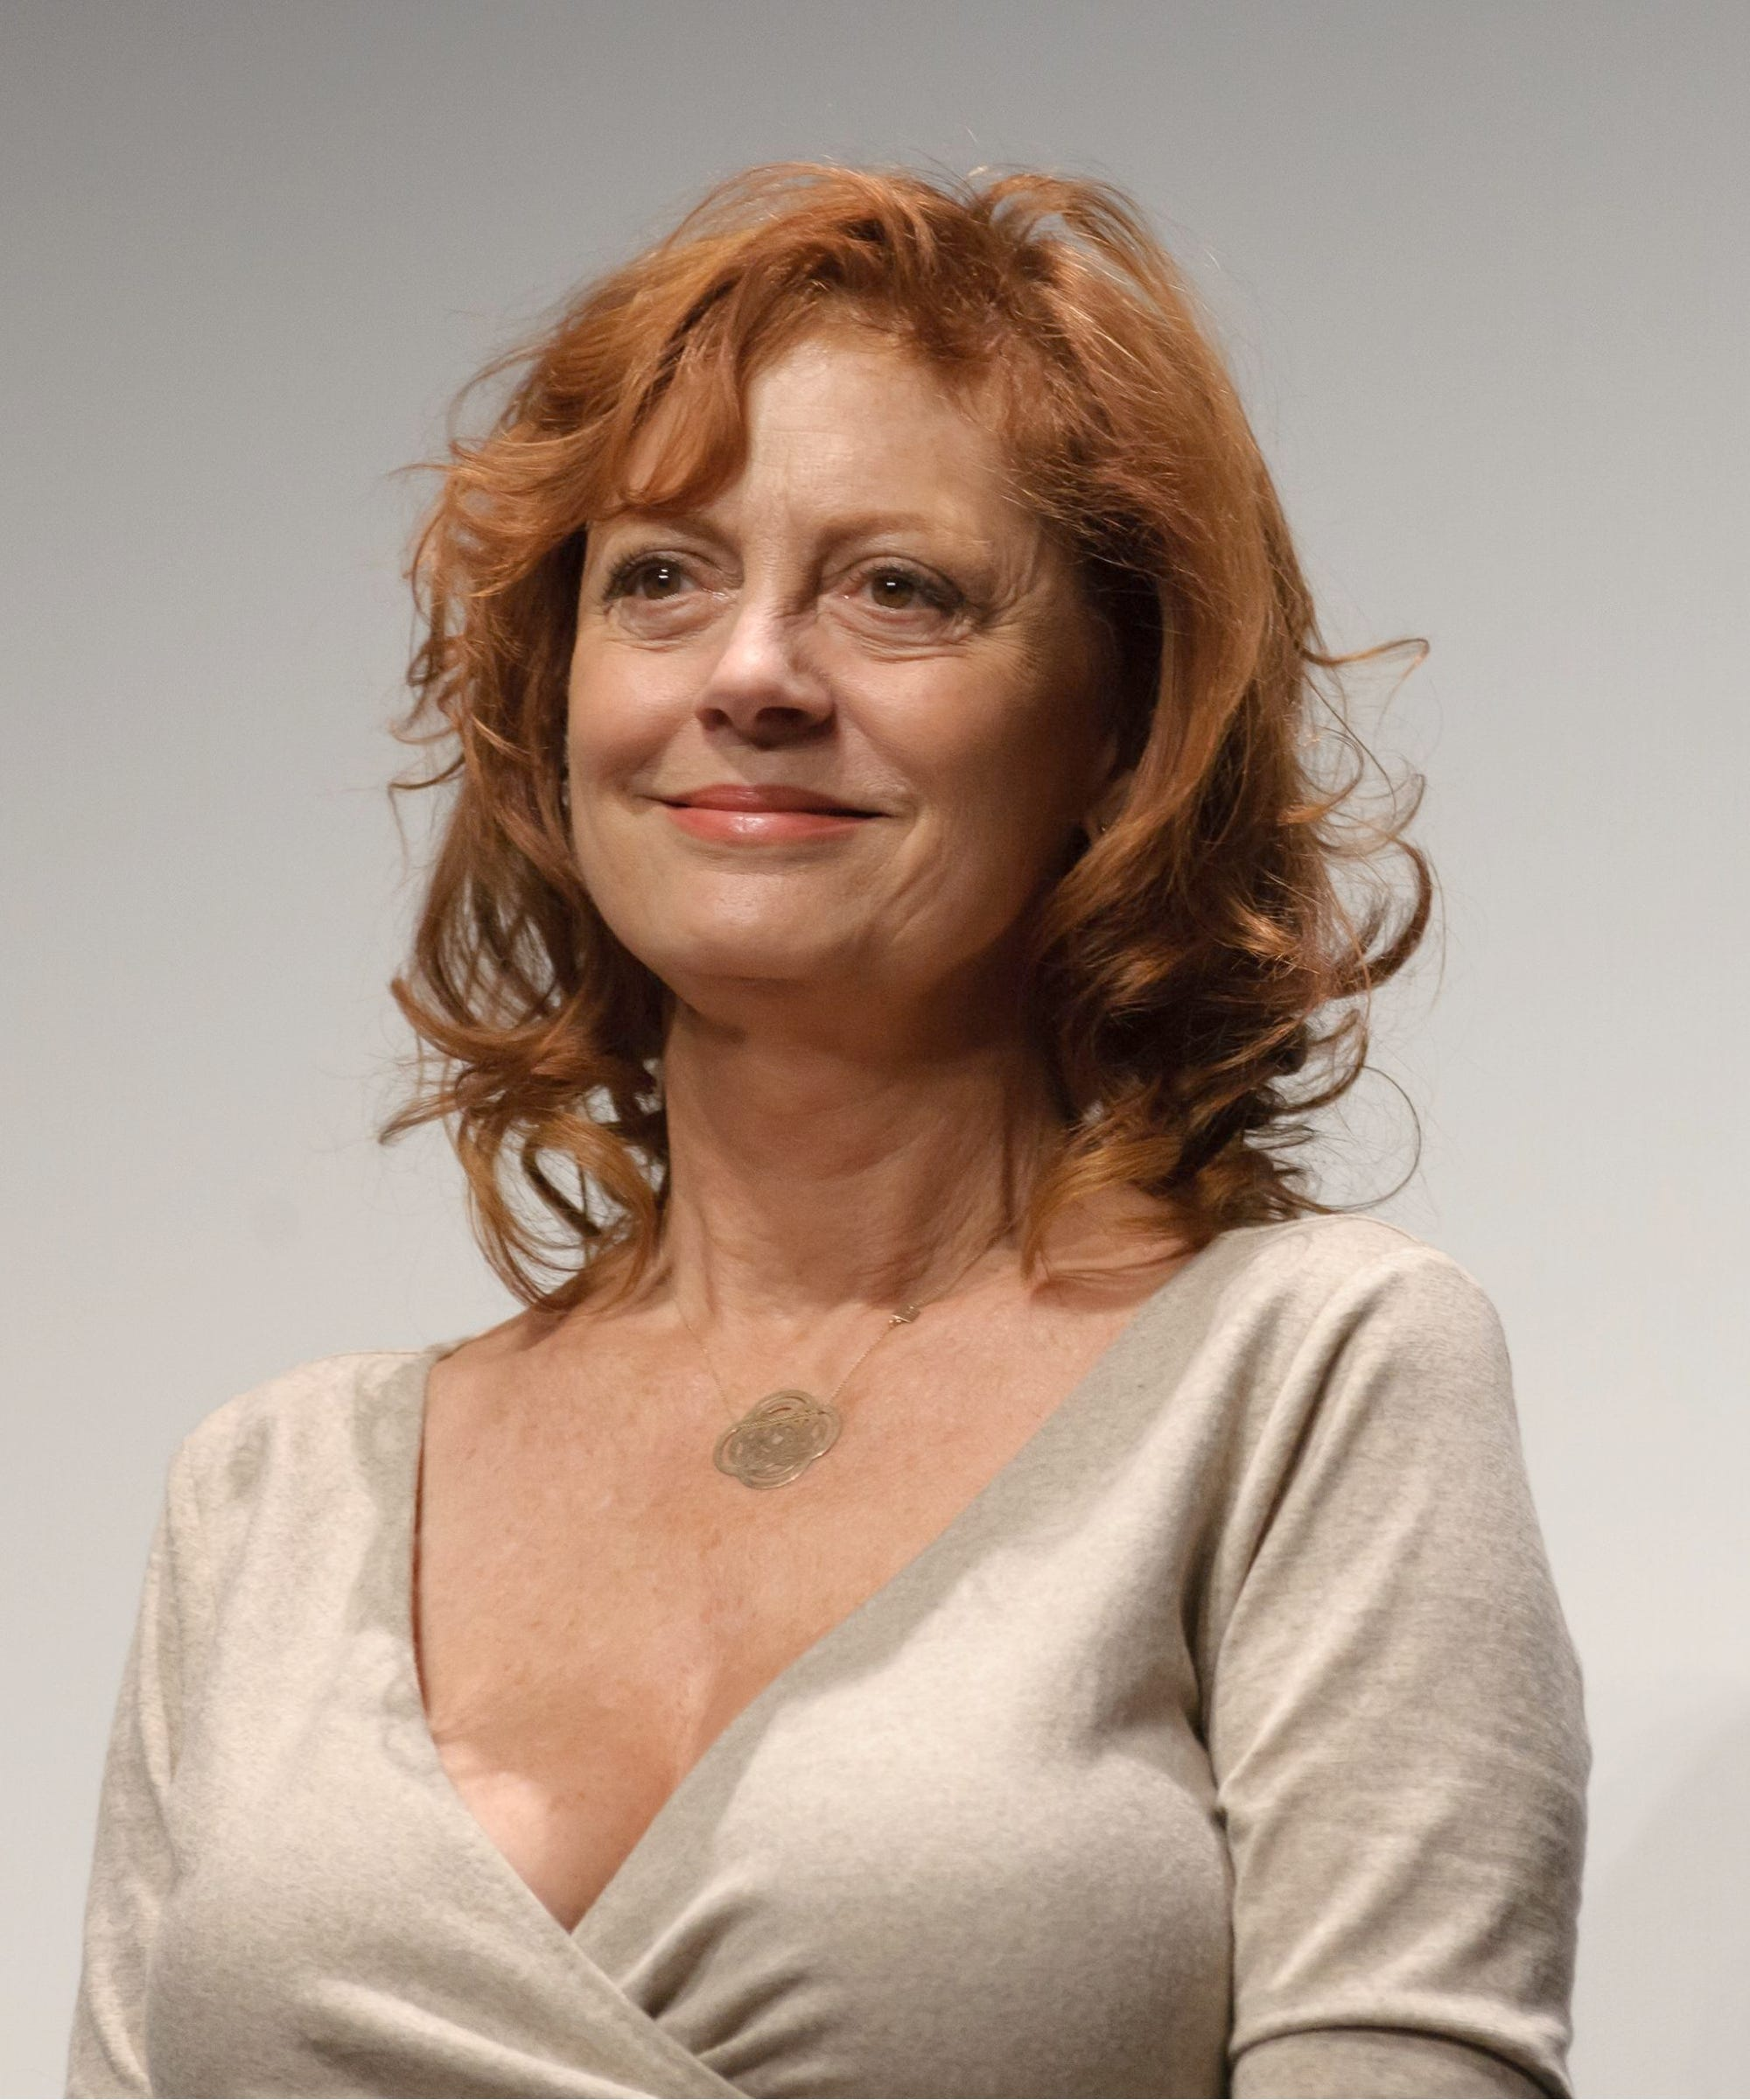 Images Susan Sarandon nudes (48 foto and video), Pussy, Leaked, Feet, butt 2006